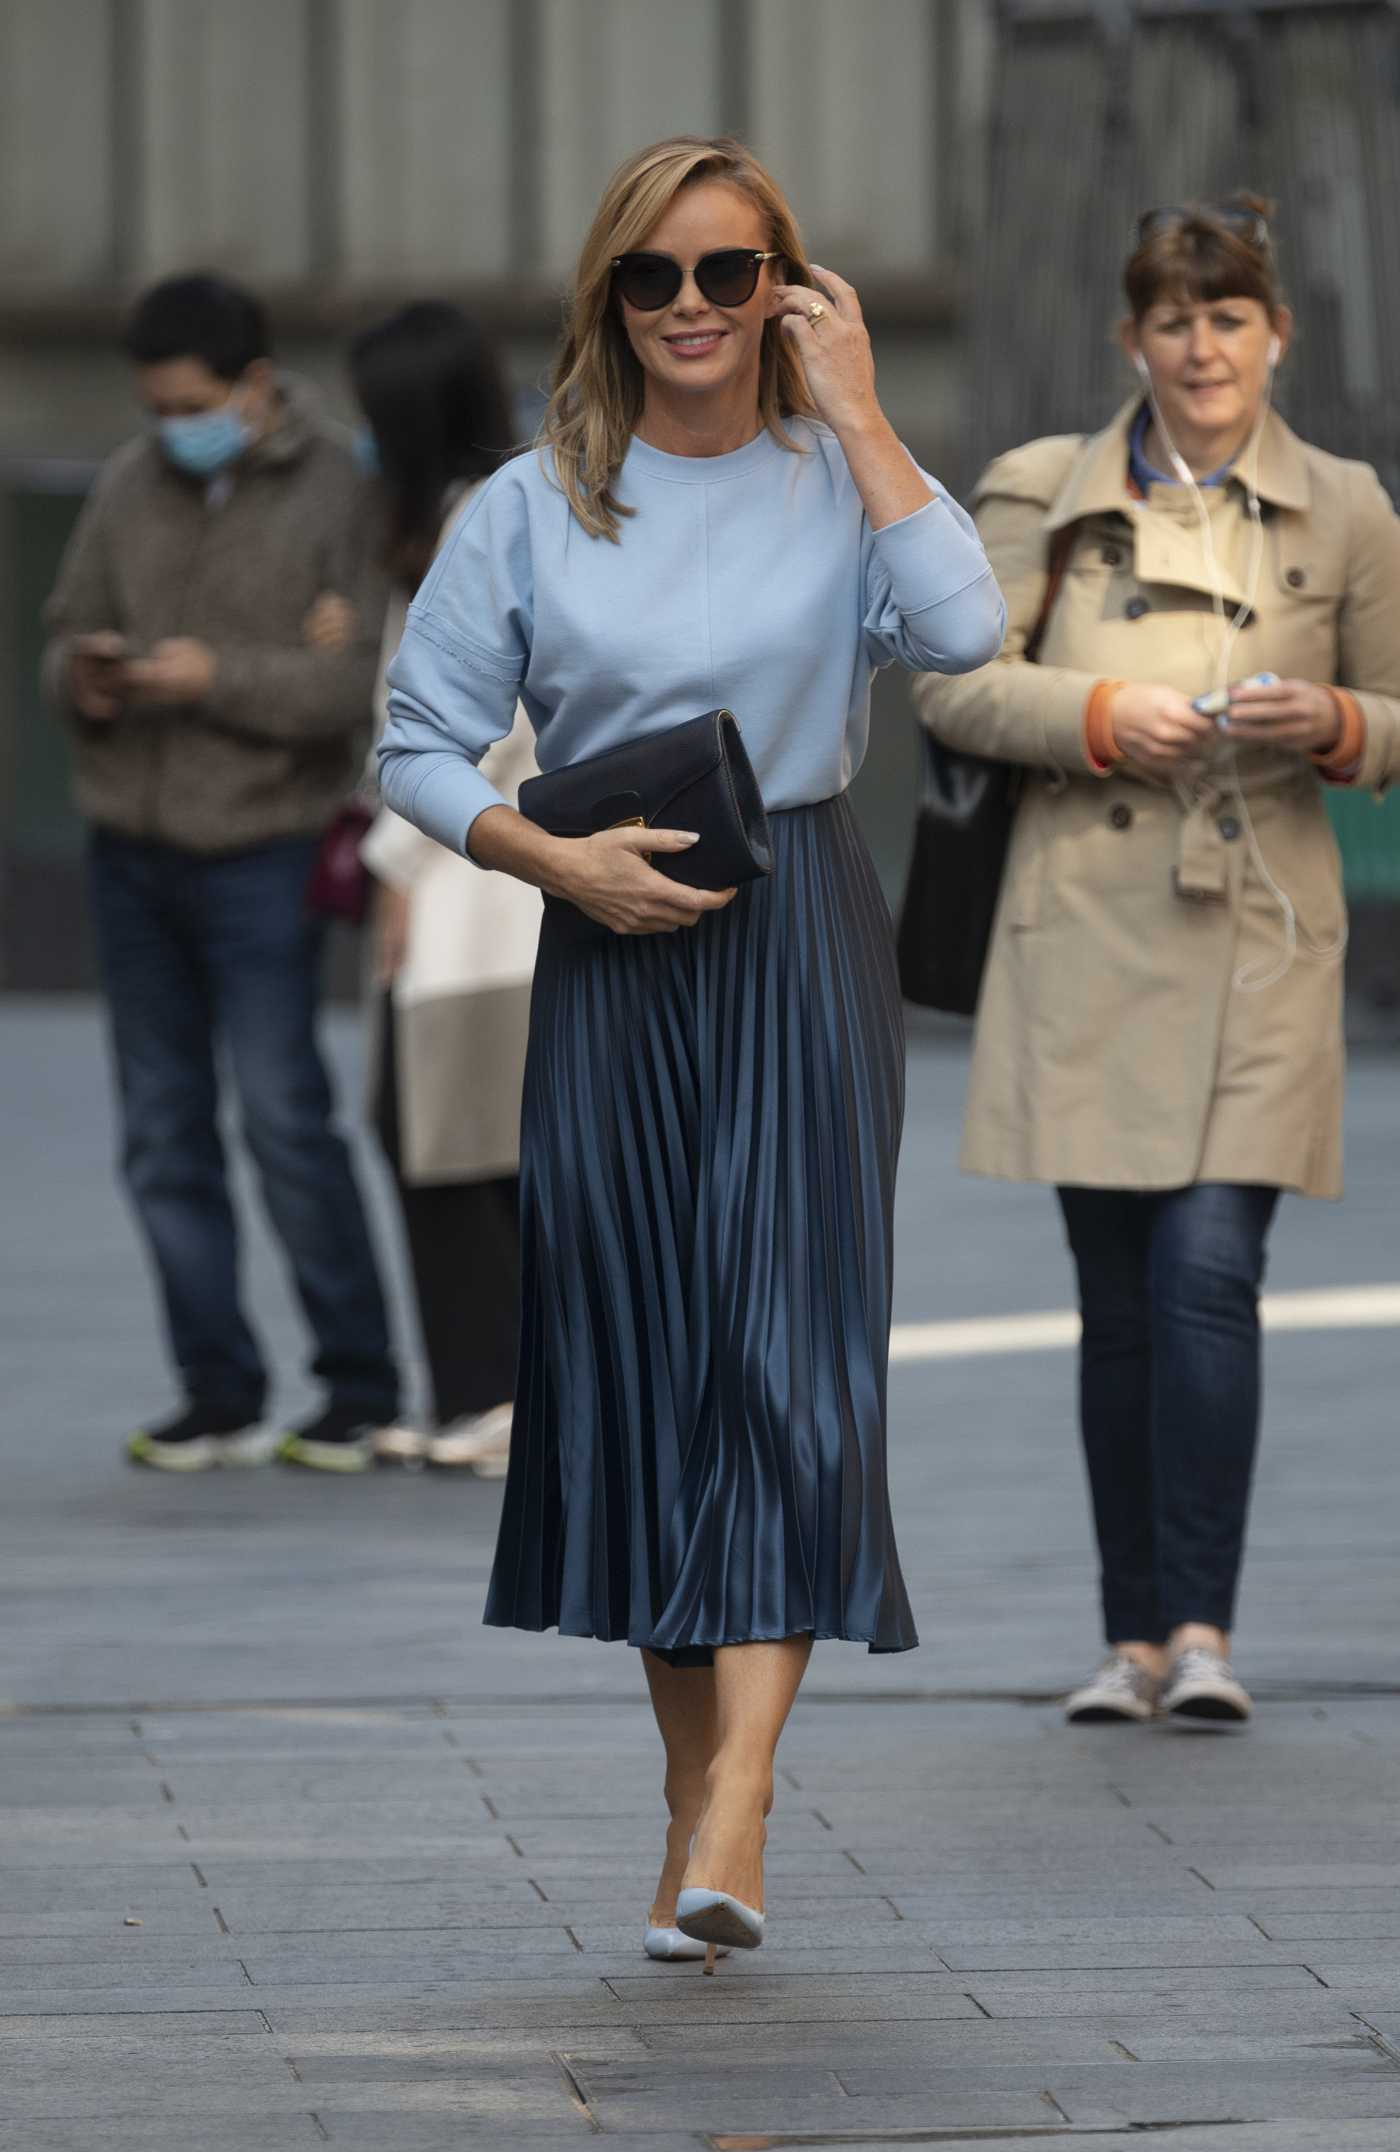 Amanda Holden in a Light Blue Sweatshirt Arrives at the Global Radio Studios in London 09/10/2020